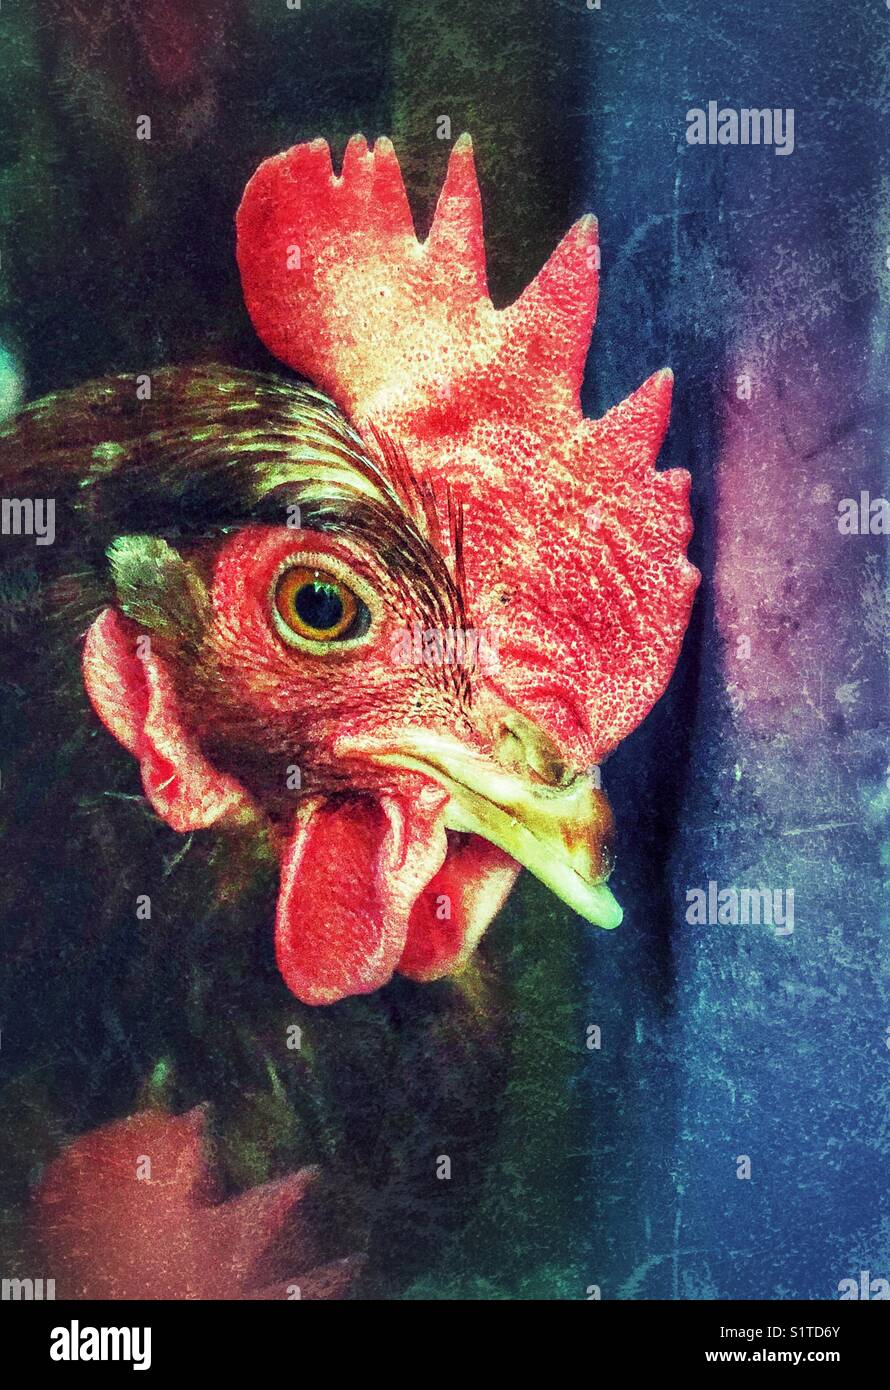 Colourful creative portrait of a chicken (Rhode Island Red hen) - Stock Image